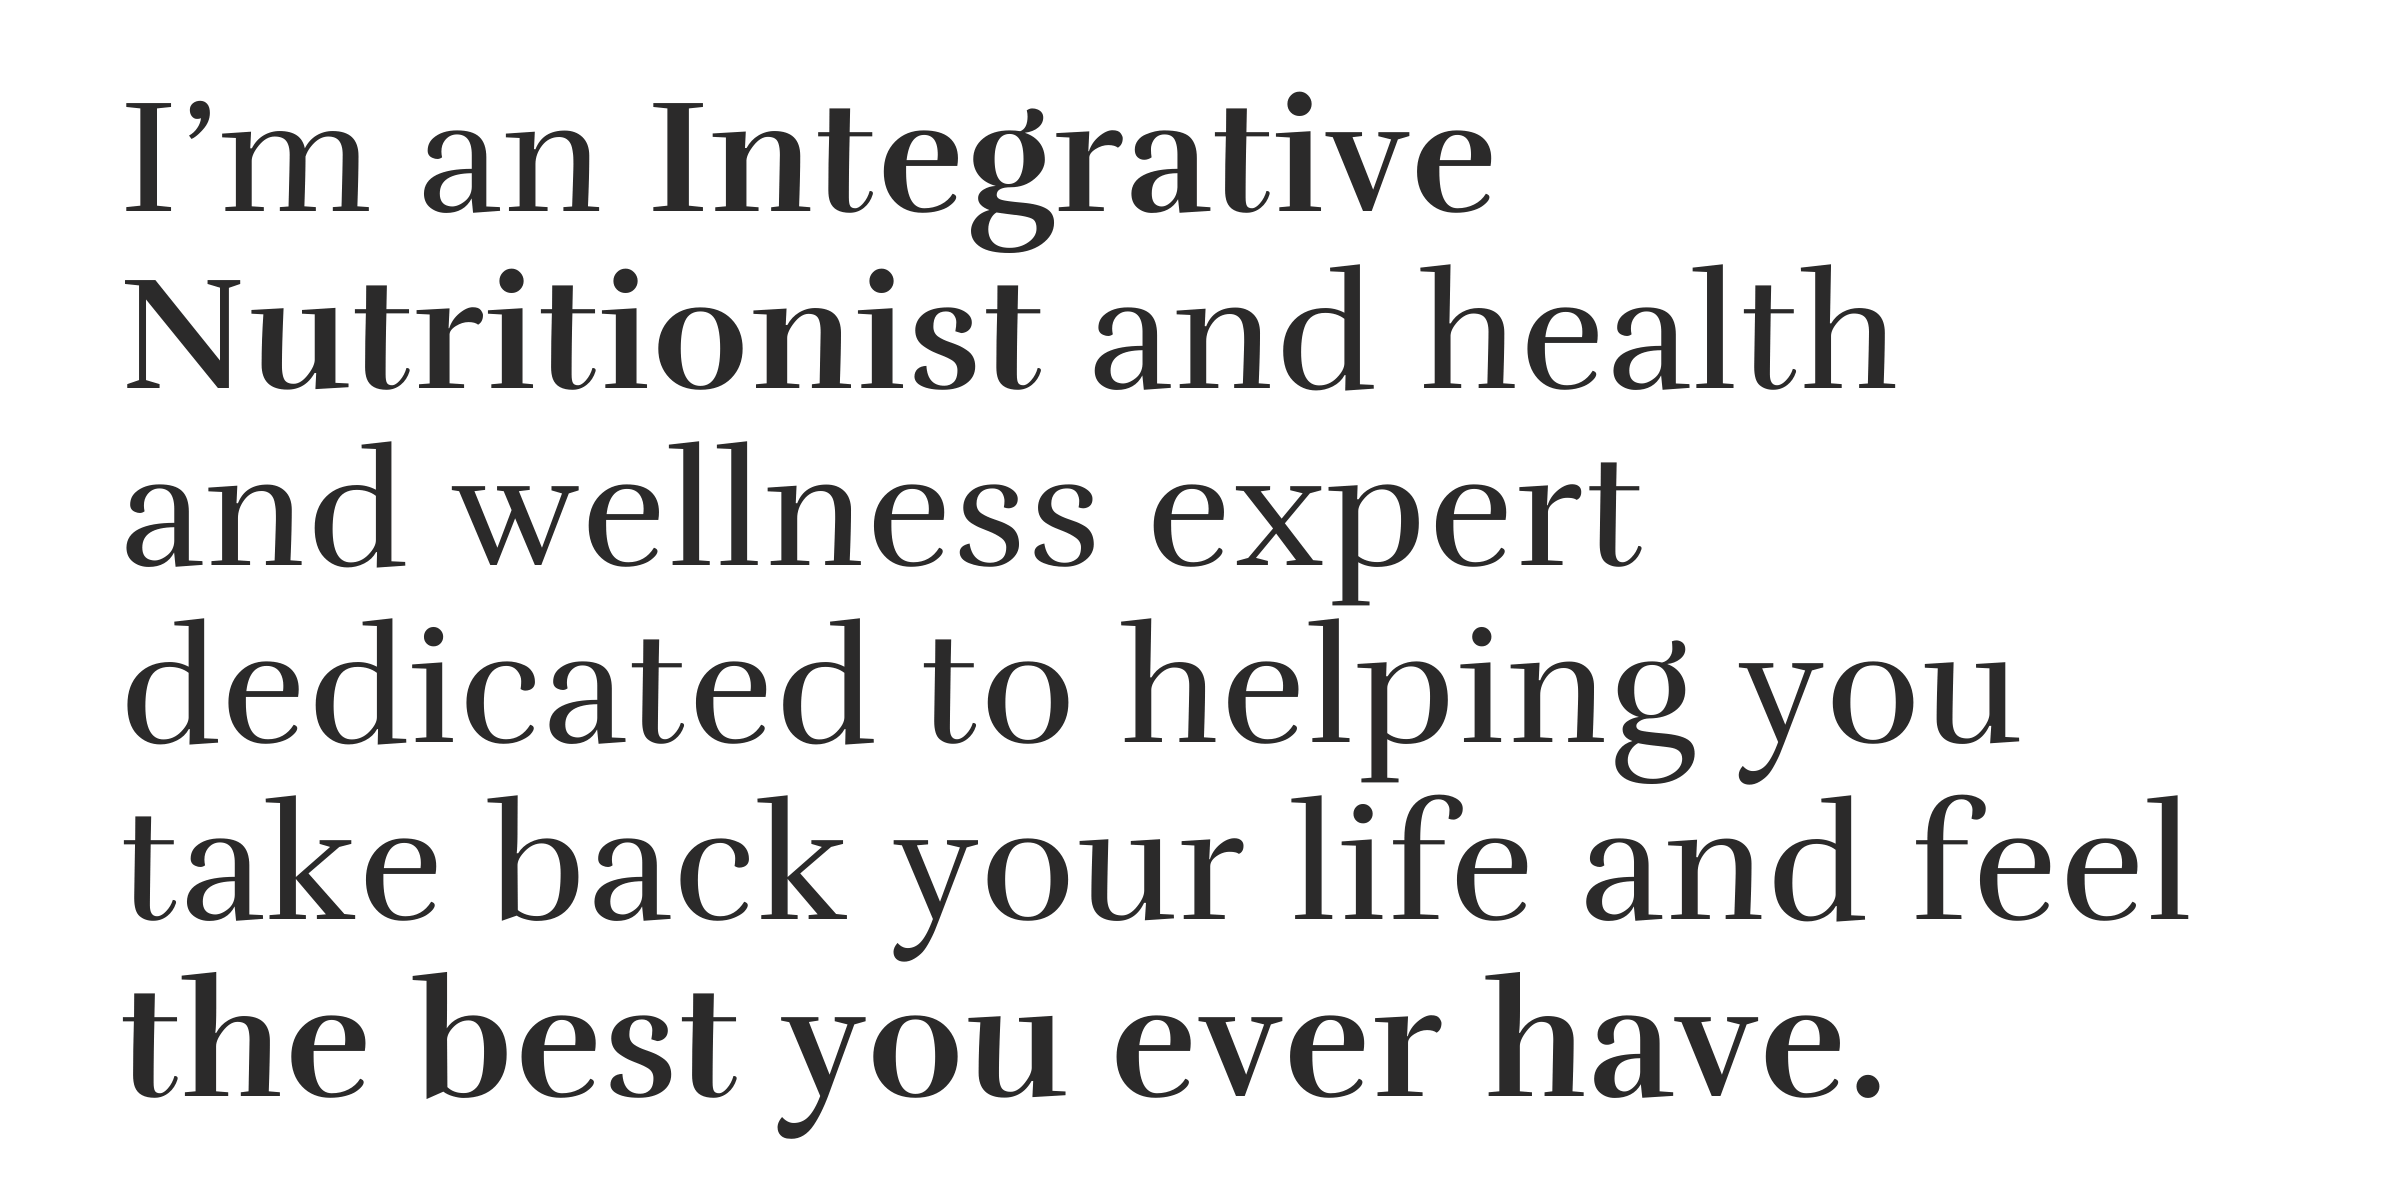 Kristen Blake is health and wellness expert who takes an integrative approach to your health.